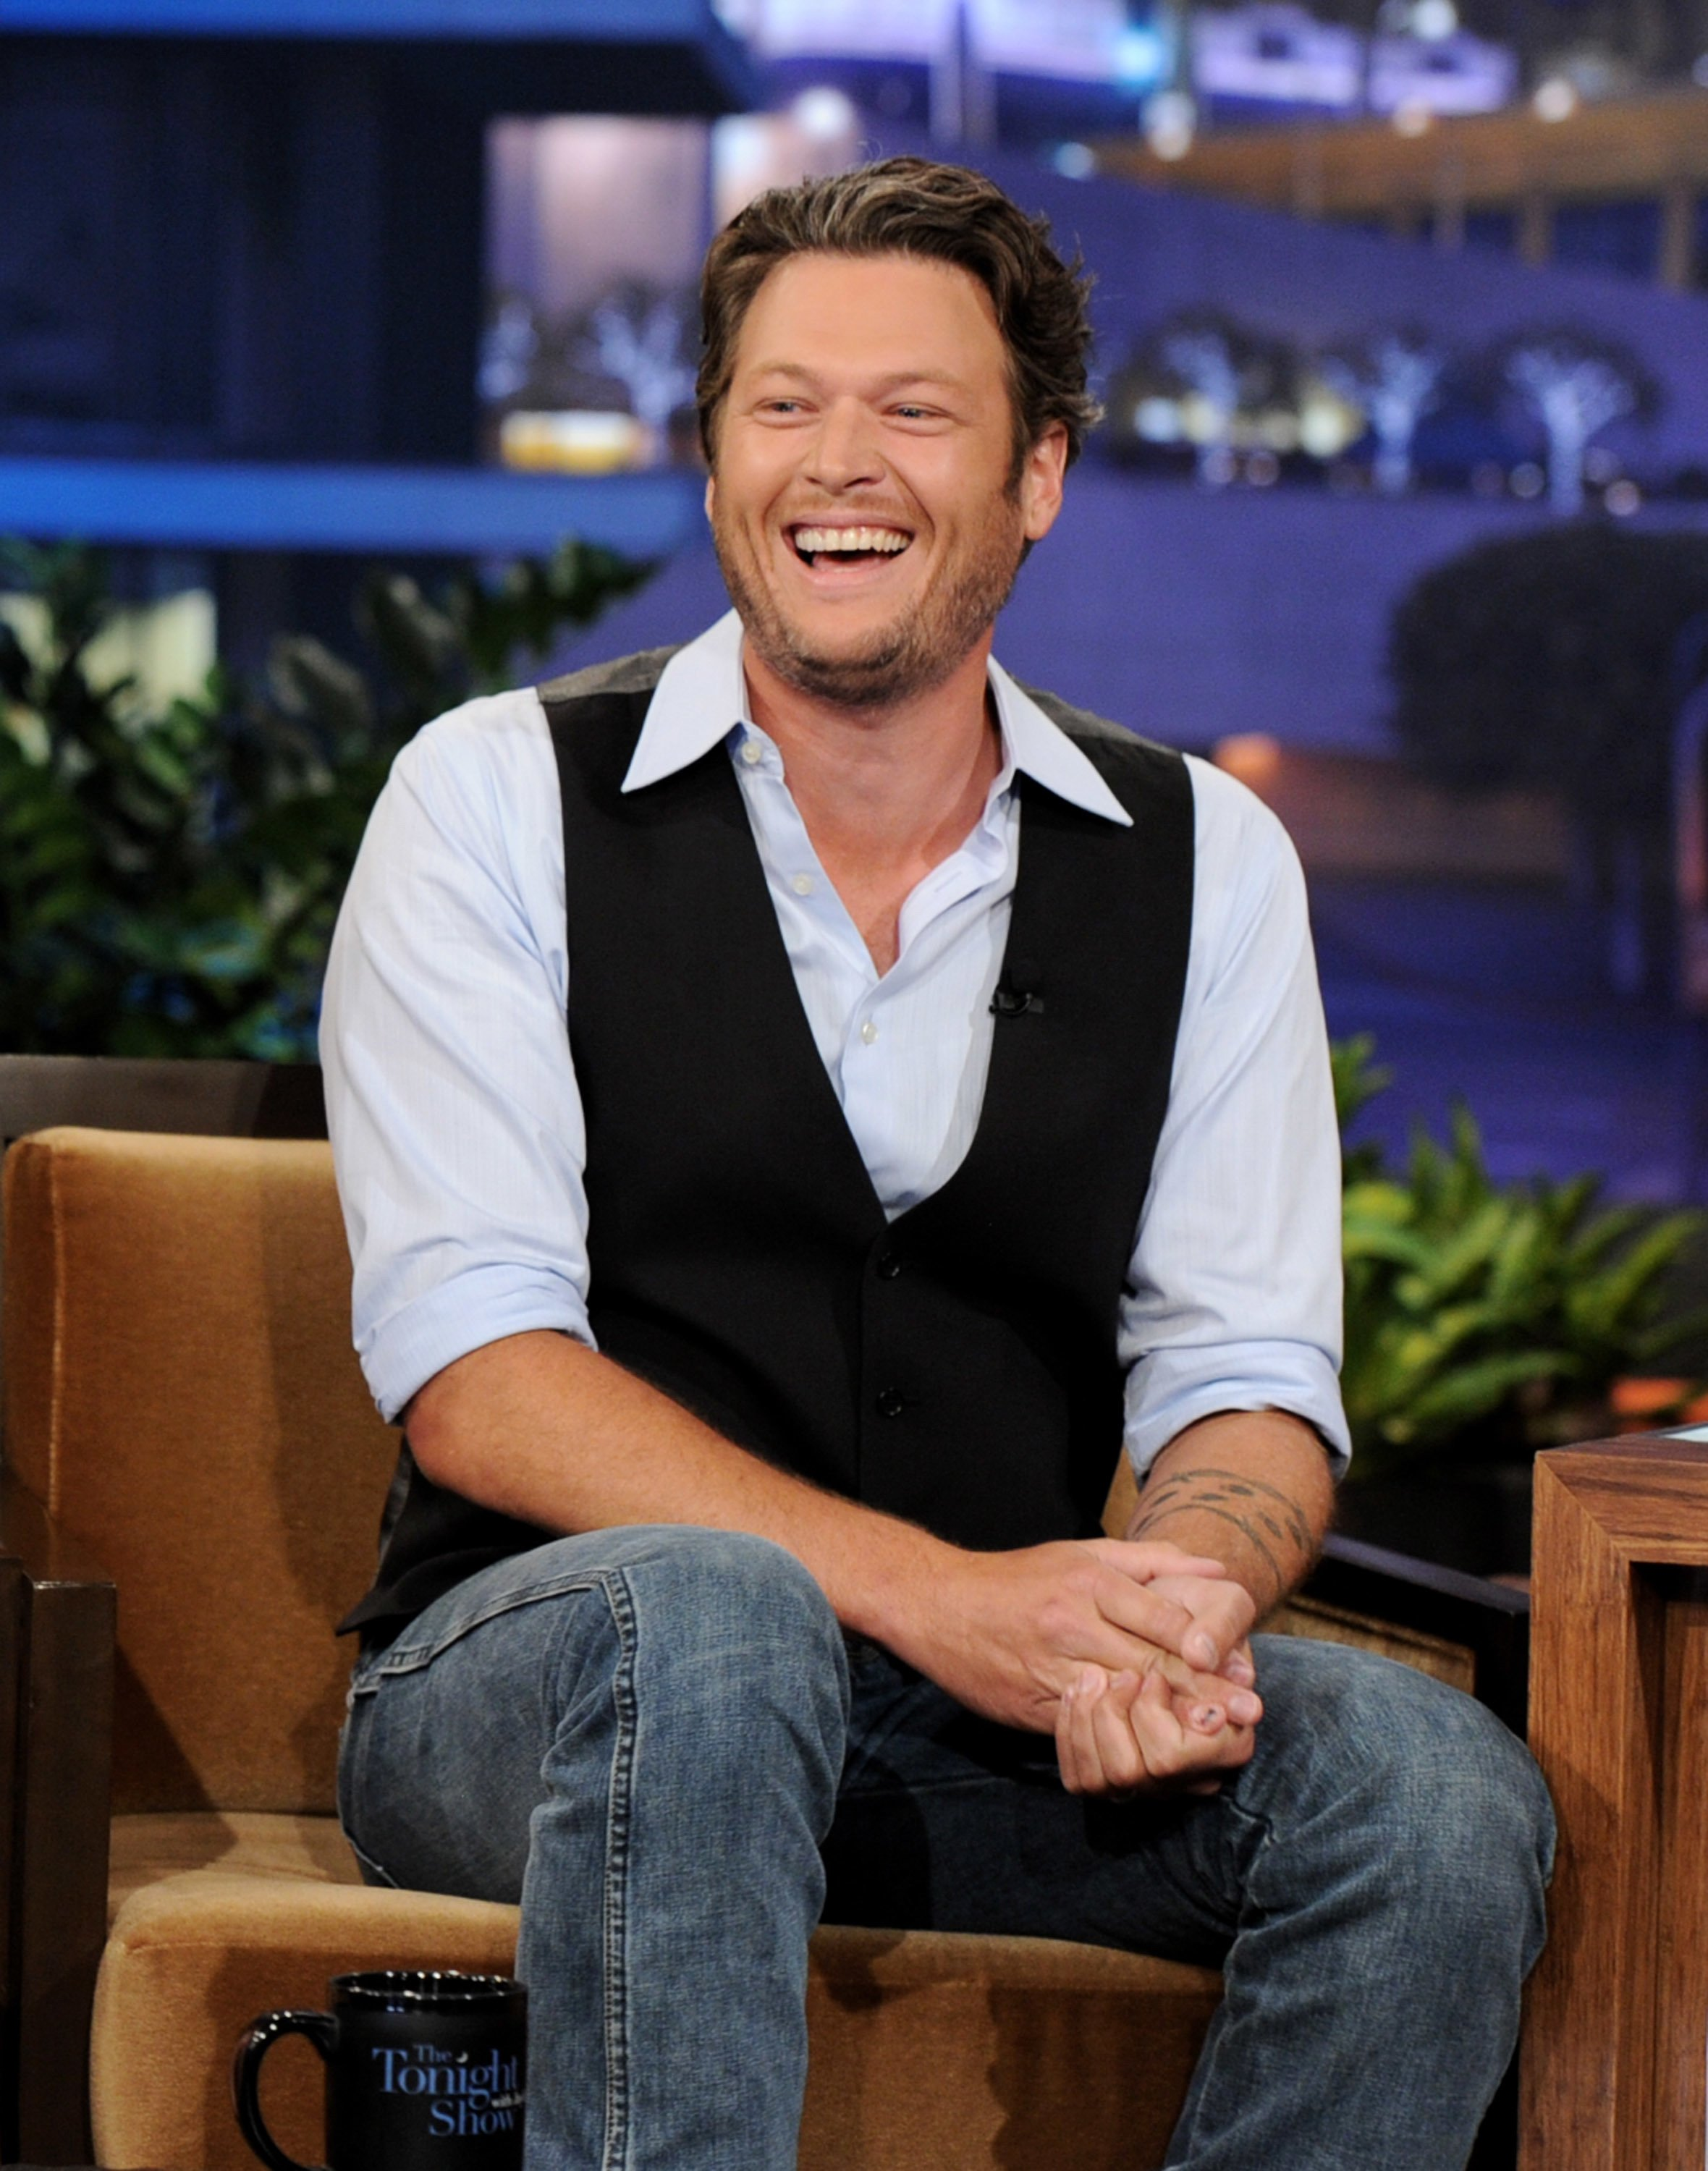 Singer Blake Shelton appears on the Tonight Show with Jay Leno at NBC Studios on June 15, 2011 | Photo: Getty Images